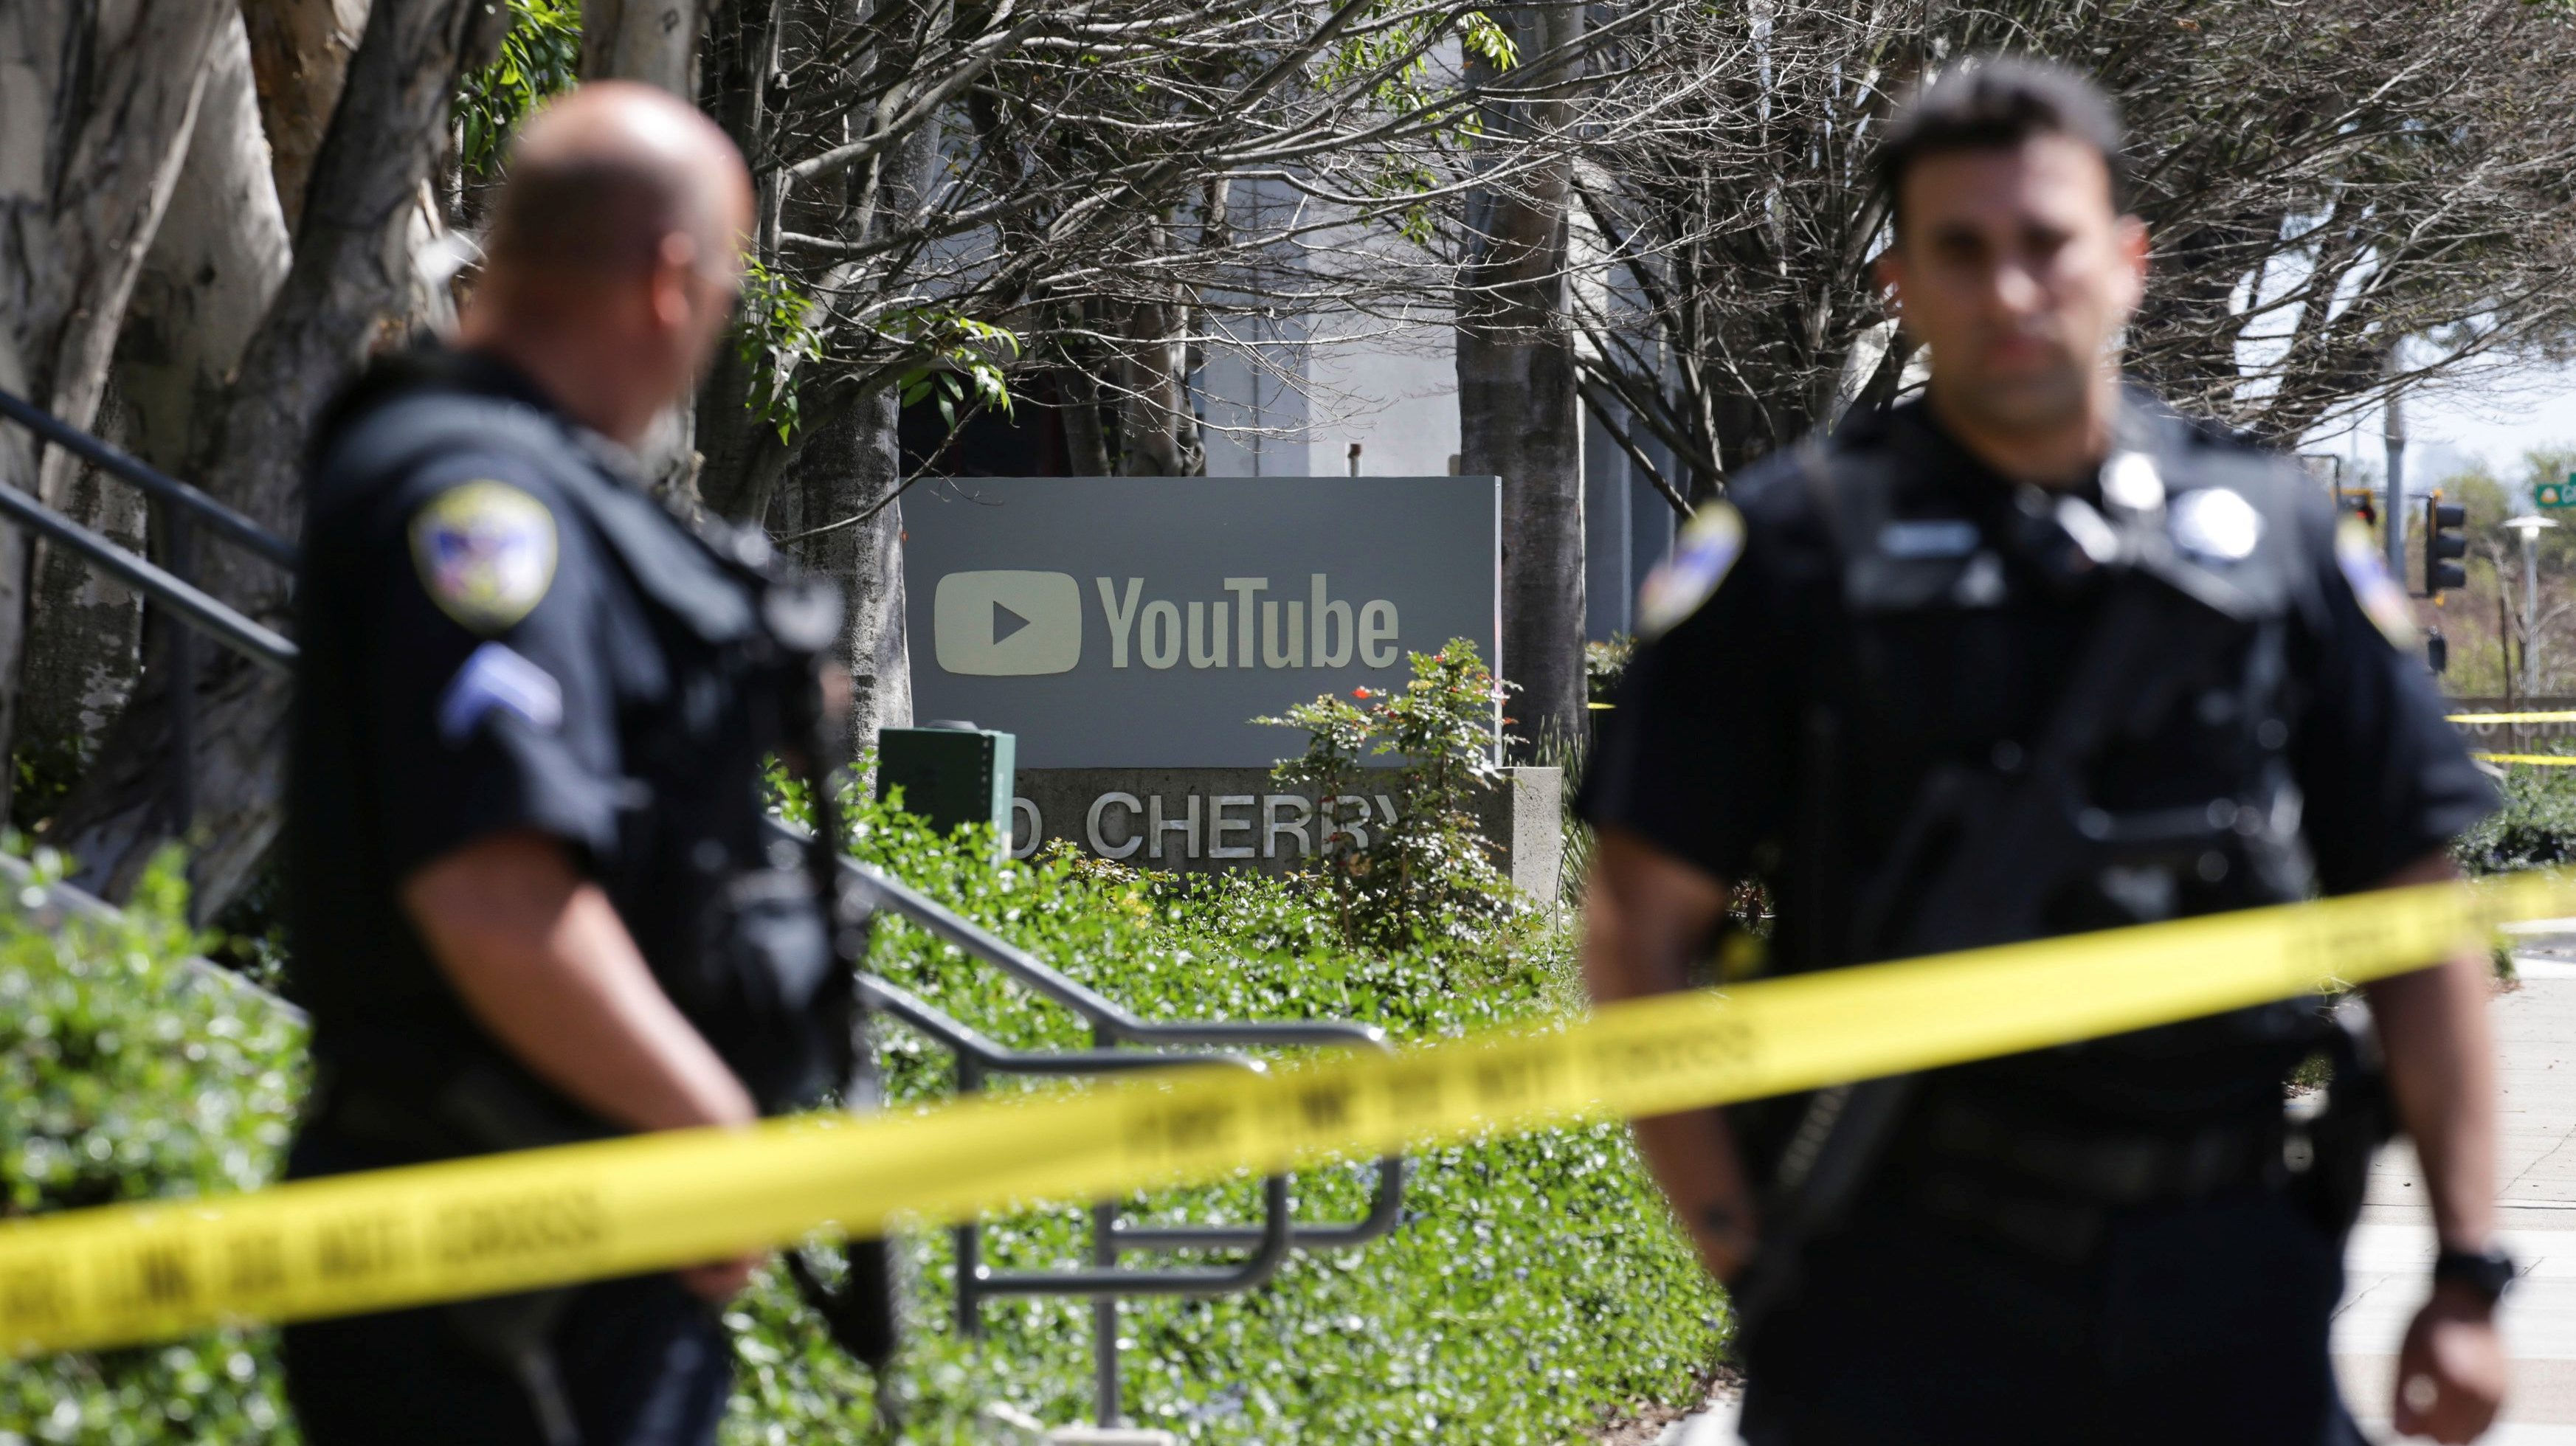 Police officers and crime scene tape are seen at YouTube headquarters following an active shooter situation in San Bruno, California, U.S., April 3, 2018. REUTERS/Elijah Nouvelage     TPX IMAGES OF THE DAY - RC1A6462E080